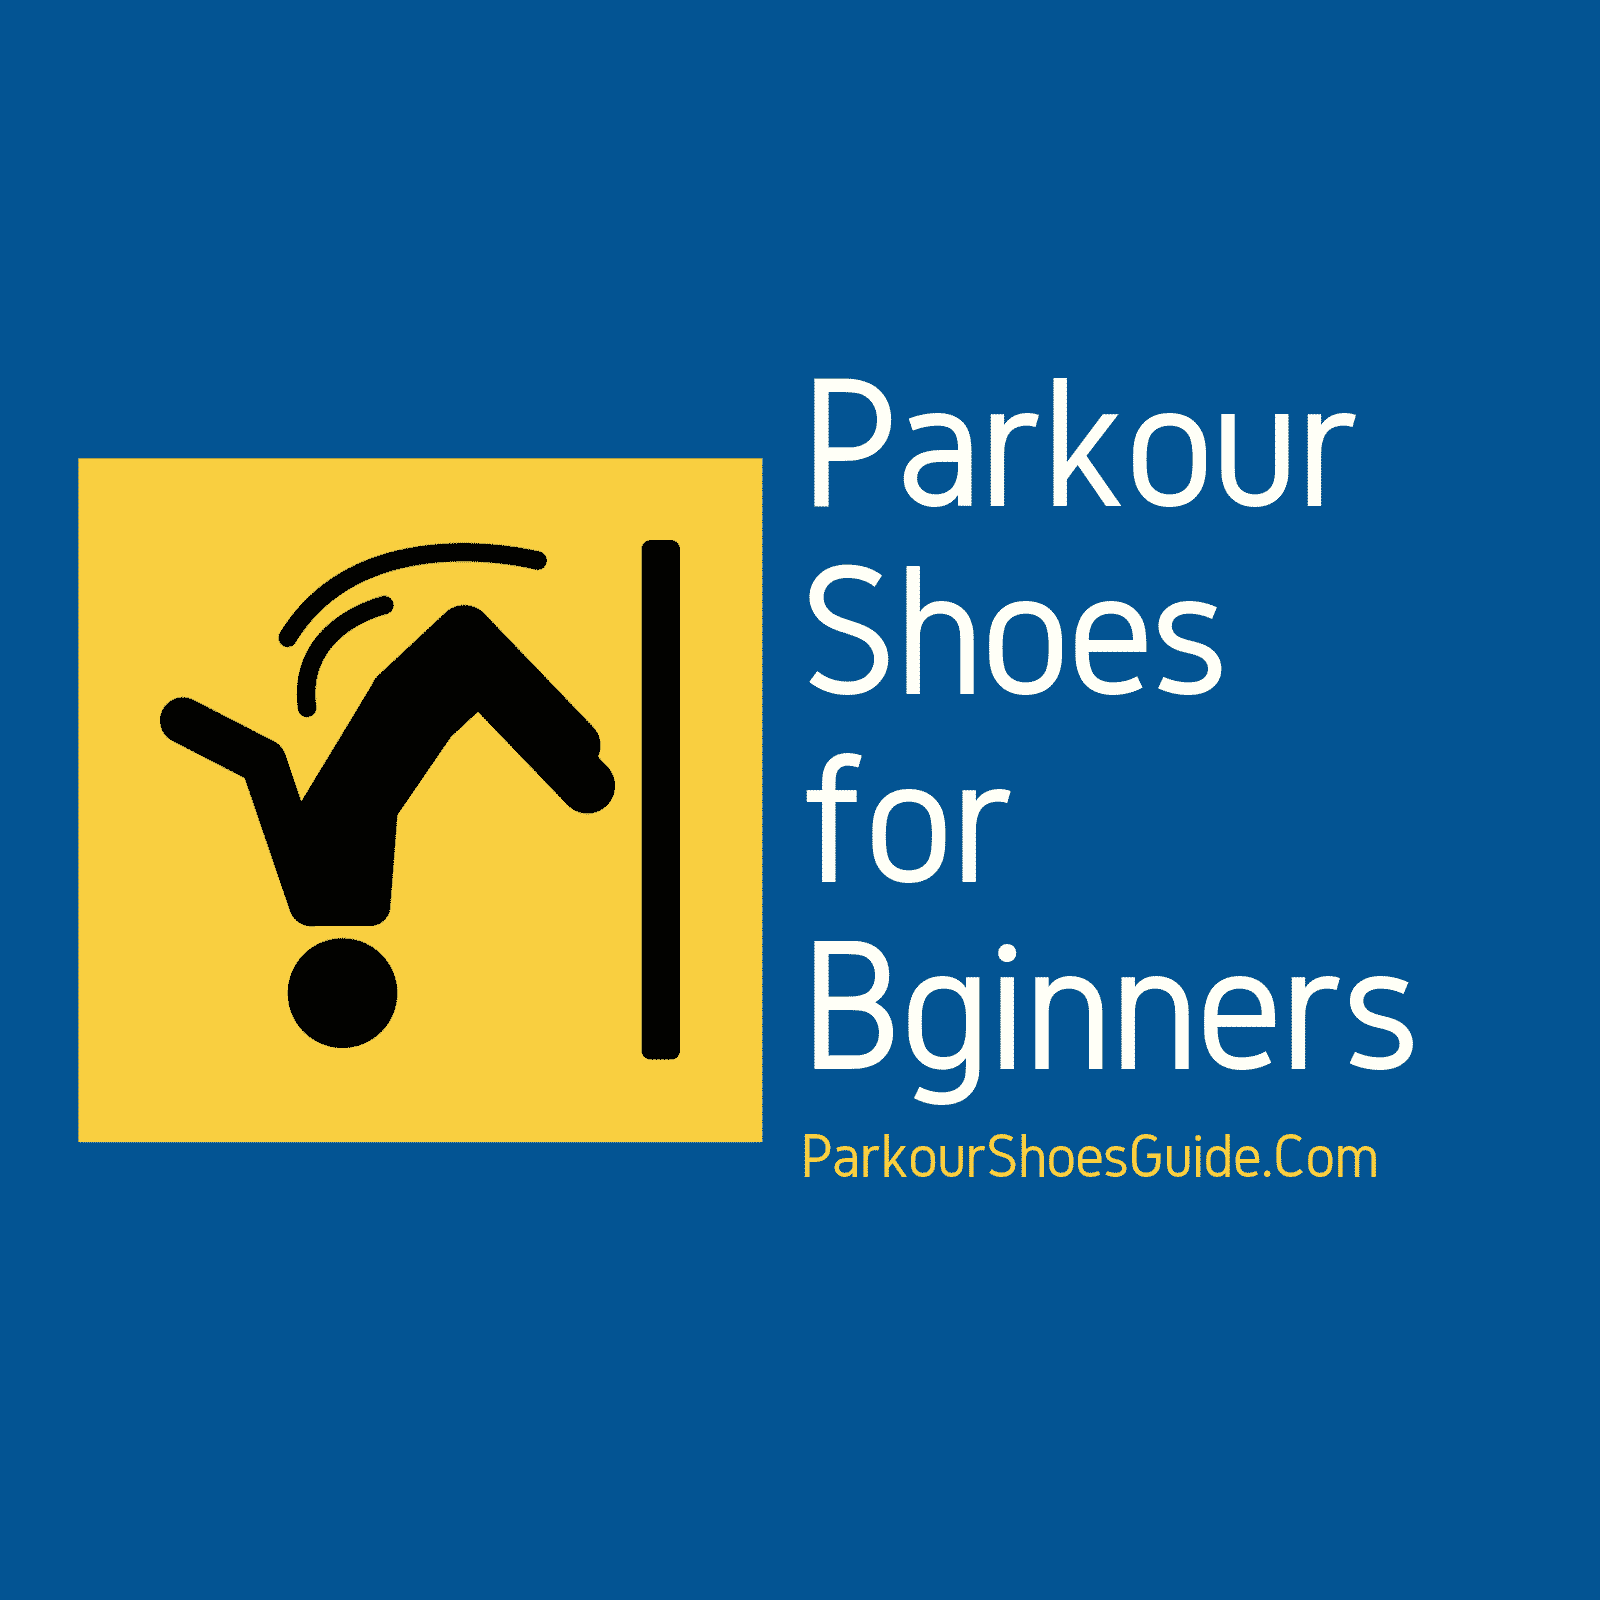 best parkour shoes for beginners